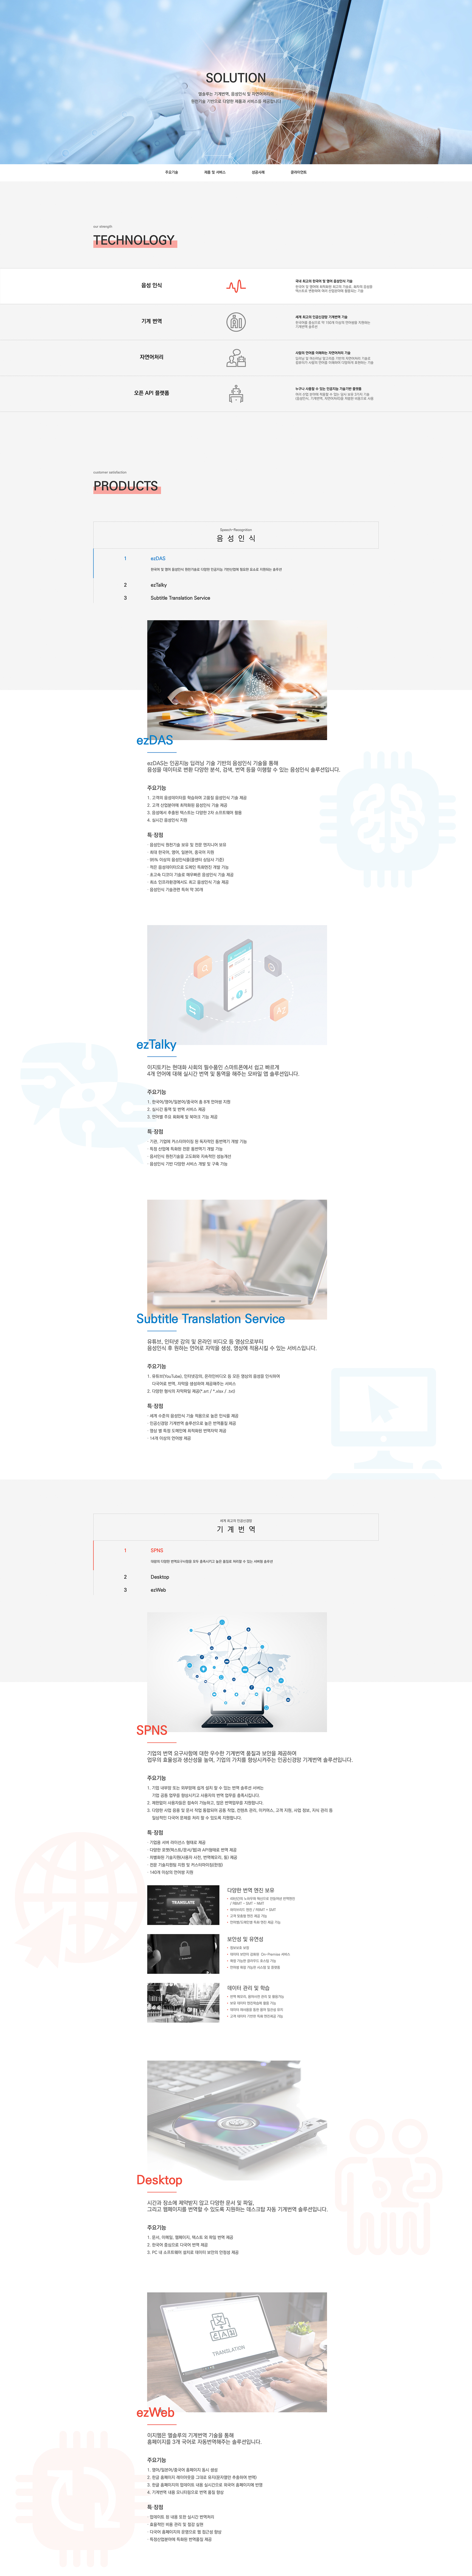 solution_page1